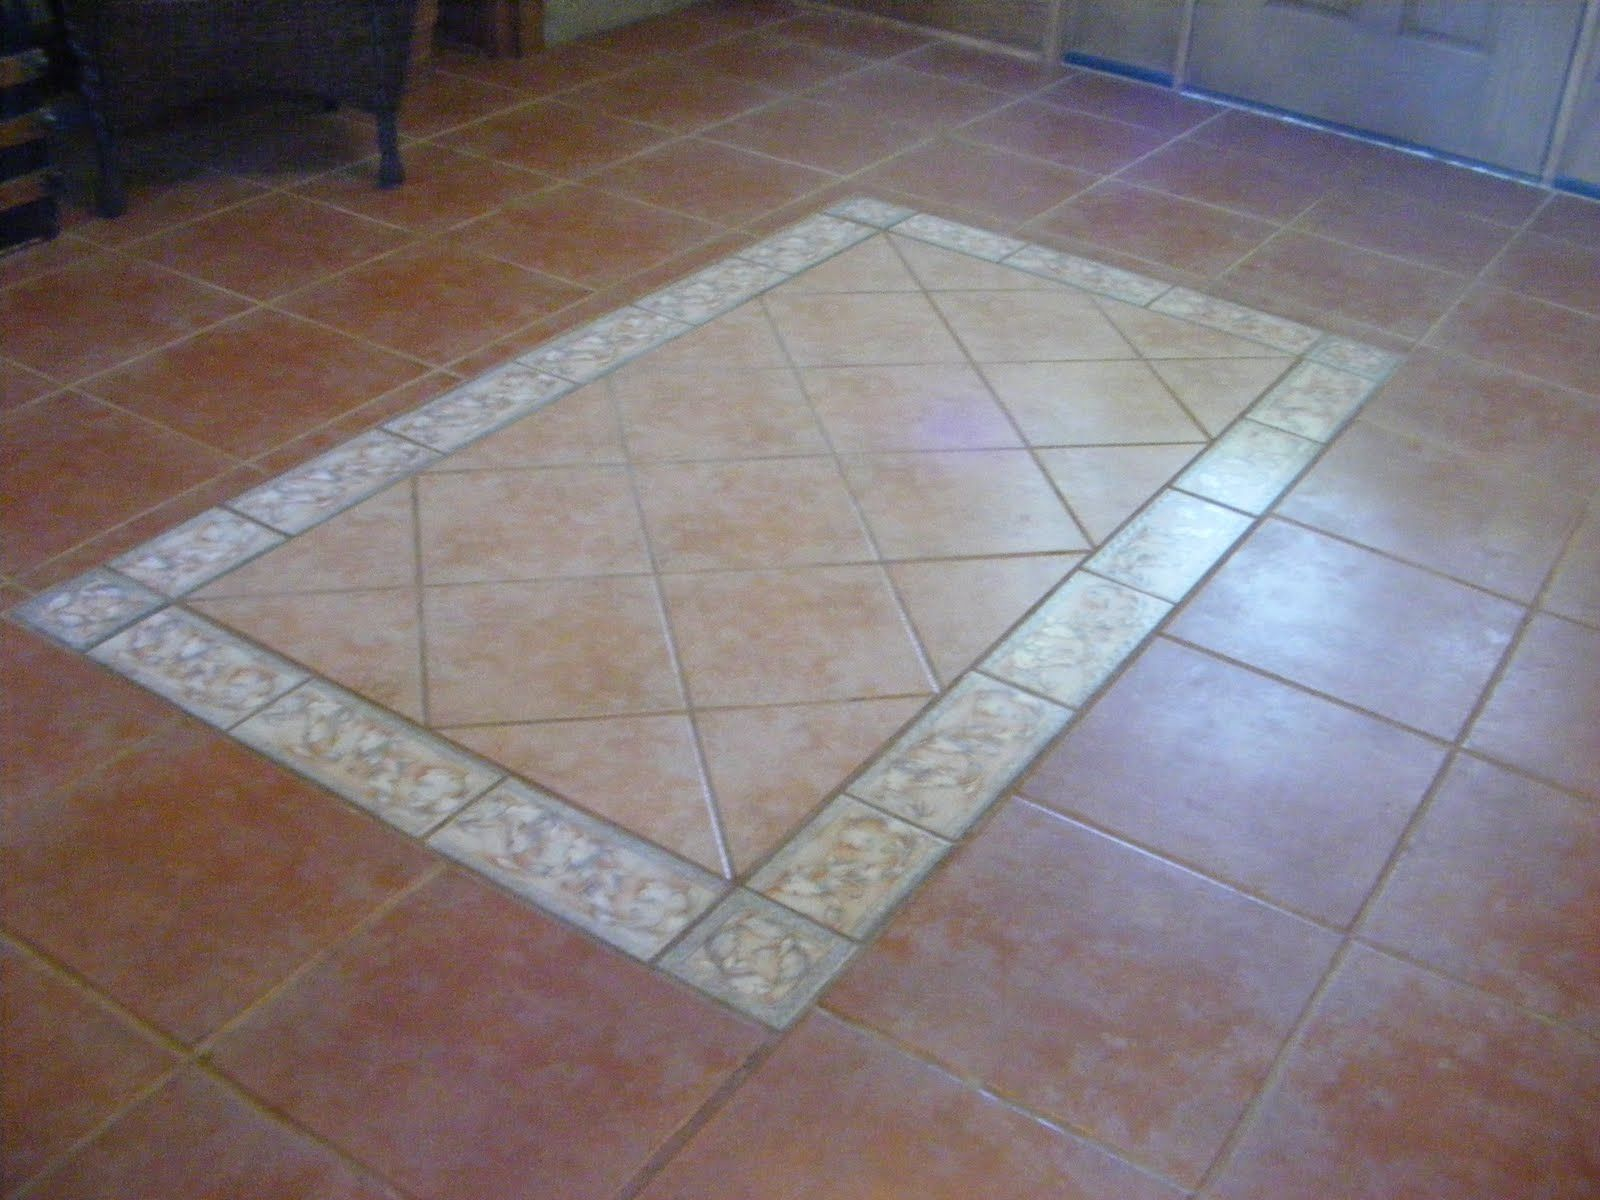 Decoration Floor Tile Design Patterns Of New Inspiration For New Home Interior Floors